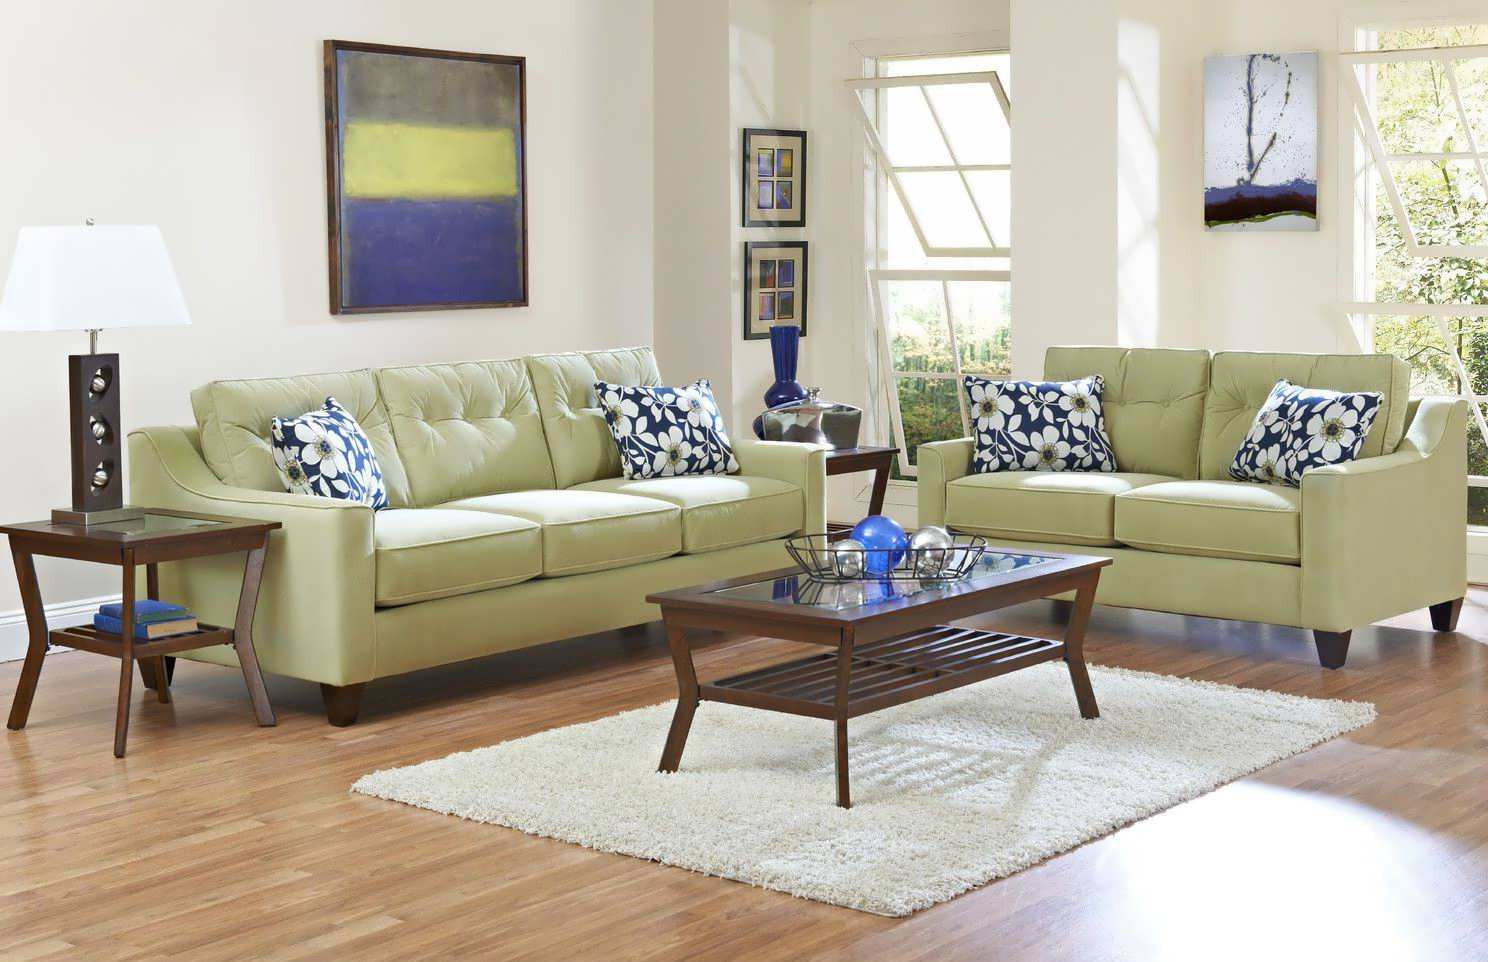 mor furniture living room sets roy home design 19304 | mor furniture living room sets 15